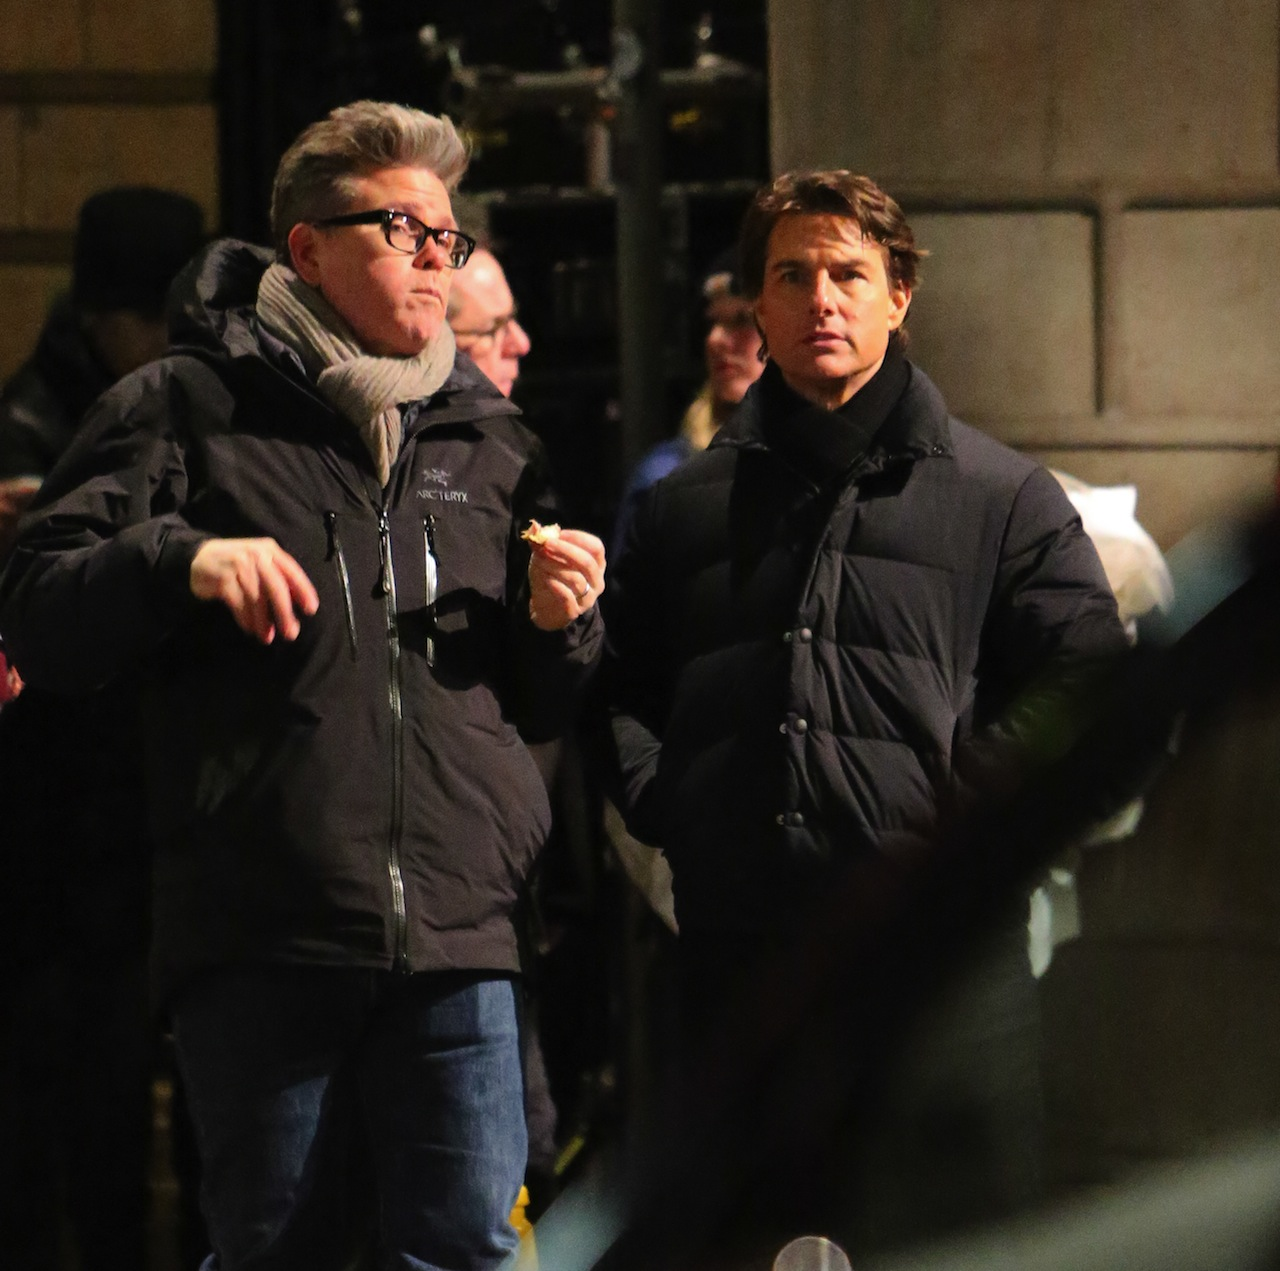 Tom Cruise films scenes for 'Mission: Impossible 5' in London Featuring: Tom Cruise Where: London, United Kingdom When: 21 Feb 2015 Credit: WENN.com